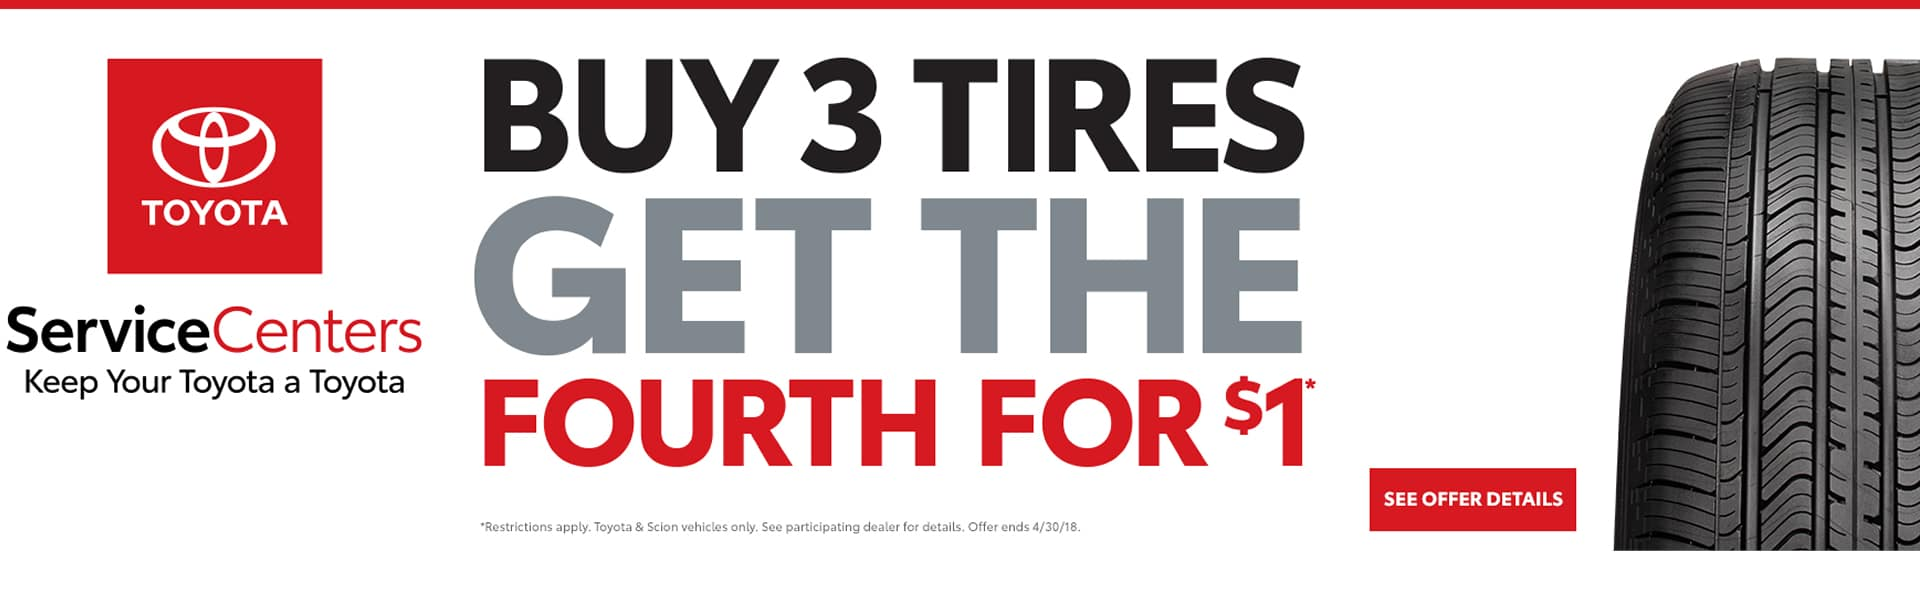 TIRE EVENT CAIN TOYOTA NORTH CANTON OHIO